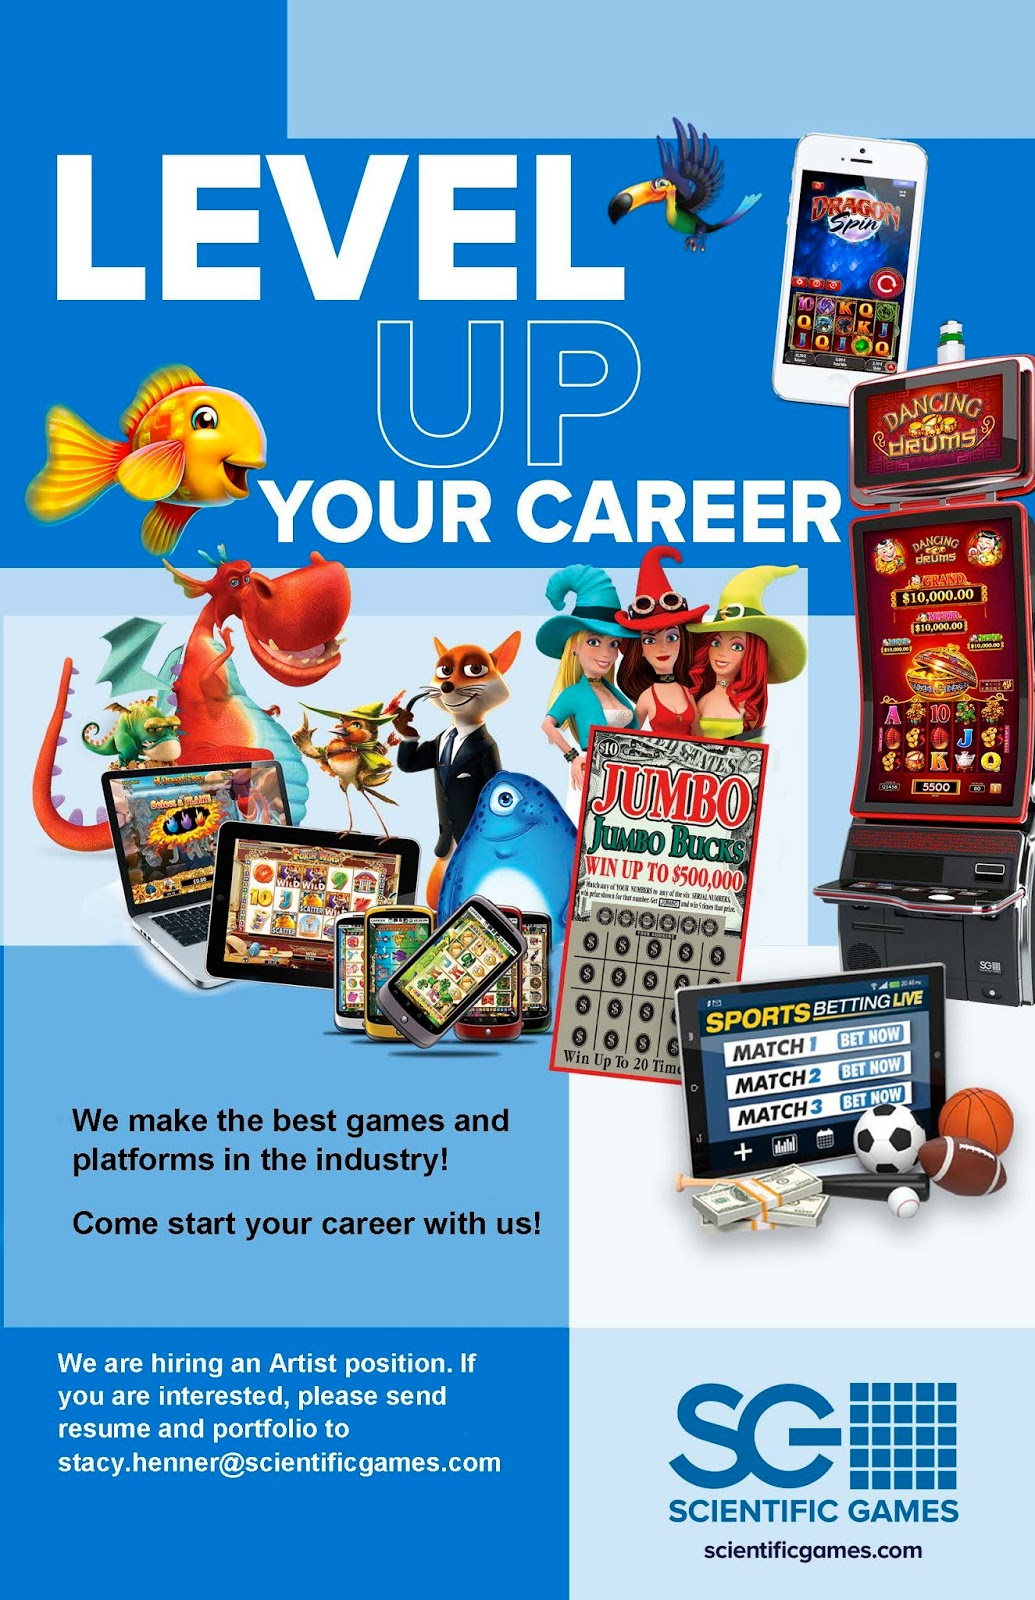 American Academy Of Art College Career Services Game Artist Scientific Games